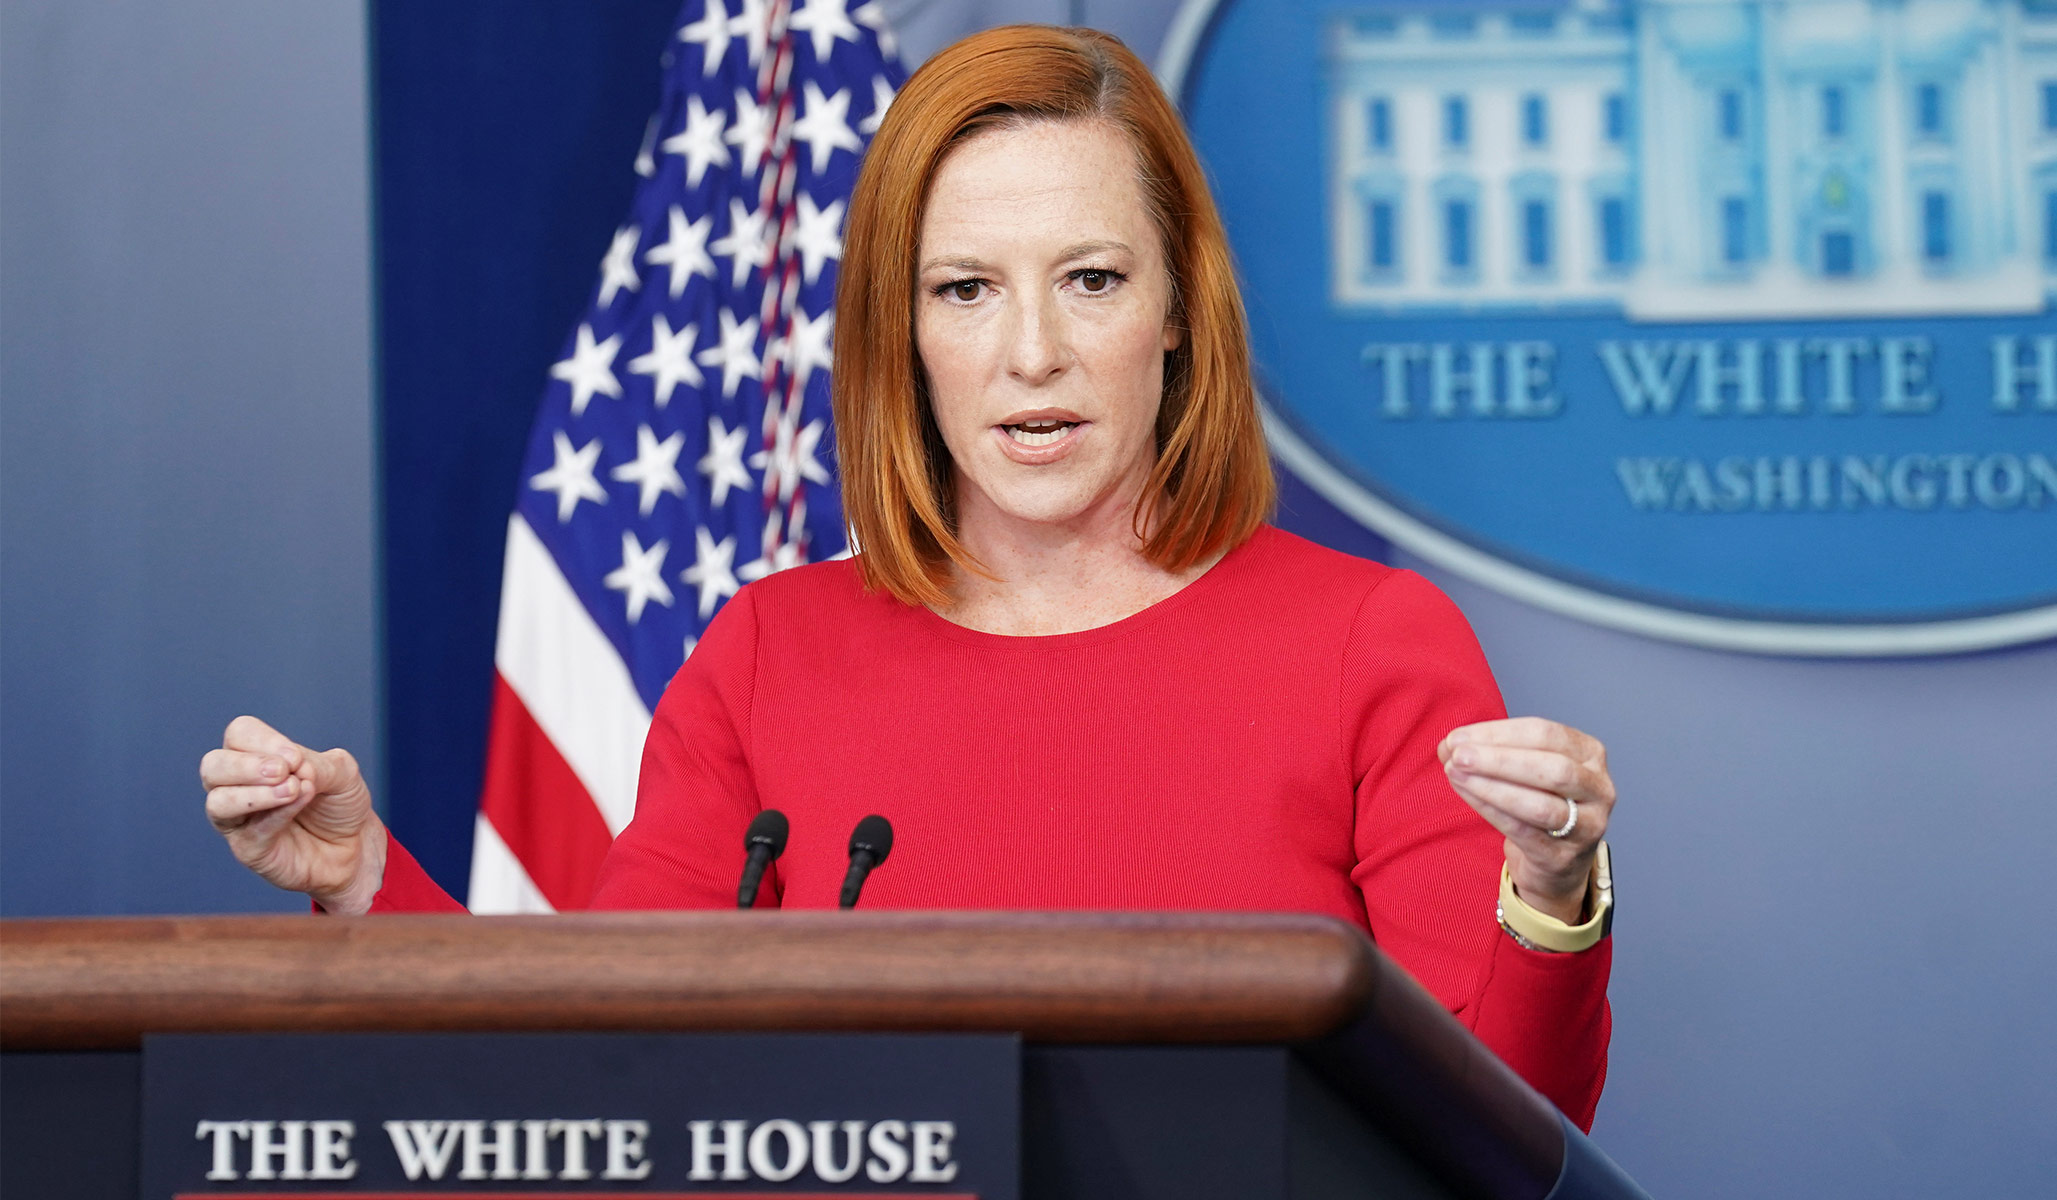 Psaki Responds to Obama's Claim That Open Borders Policy Is 'Unsustainable'